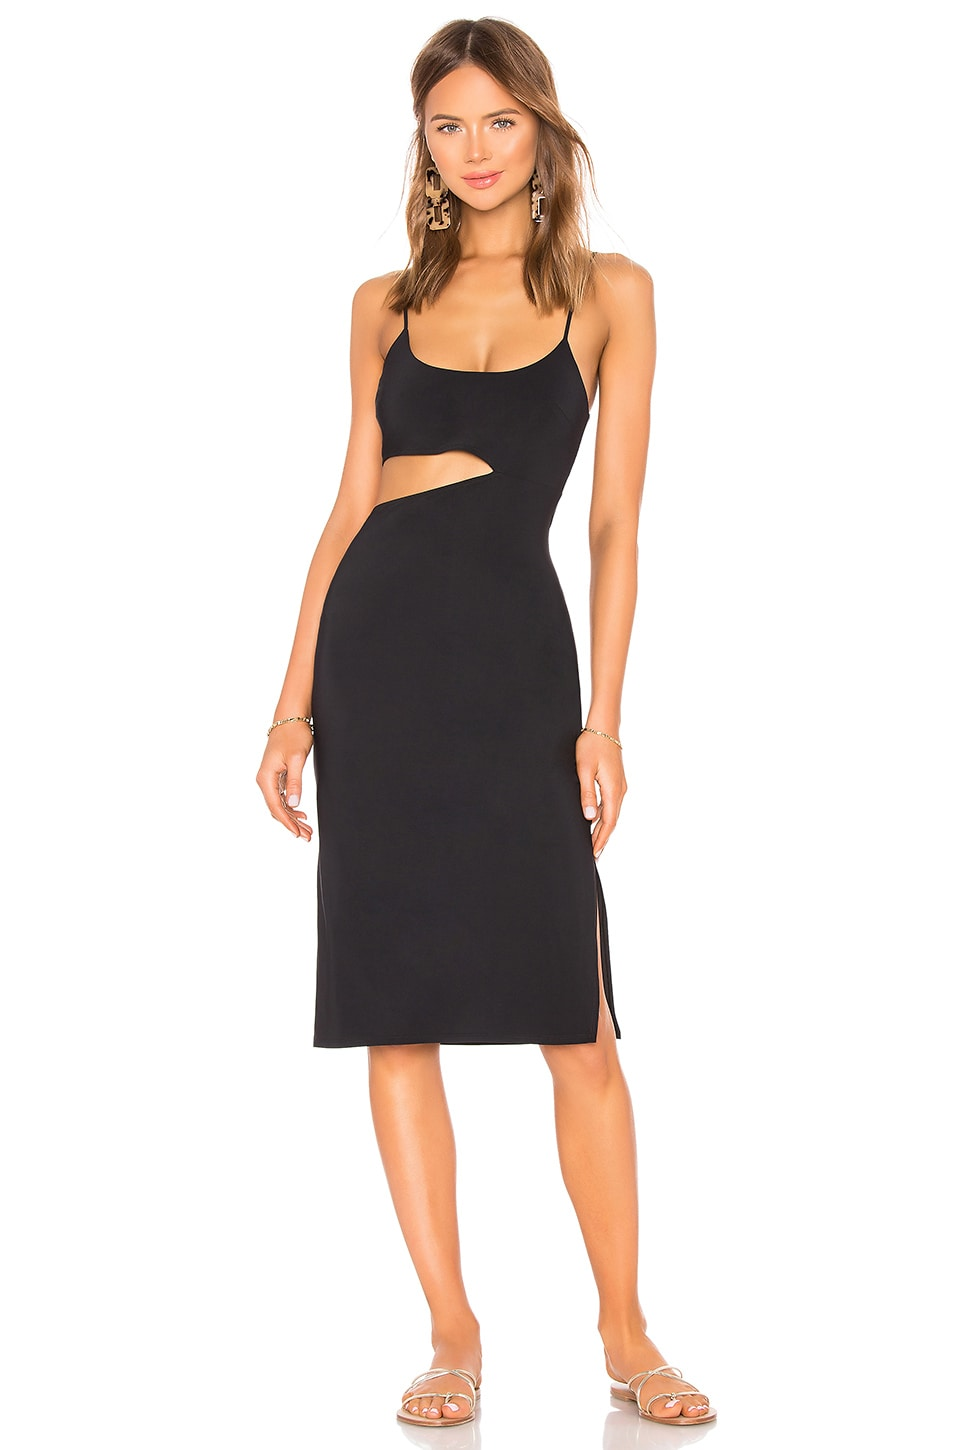 Flagpole FLAGPOLE BONDI DRESS IN BLACK